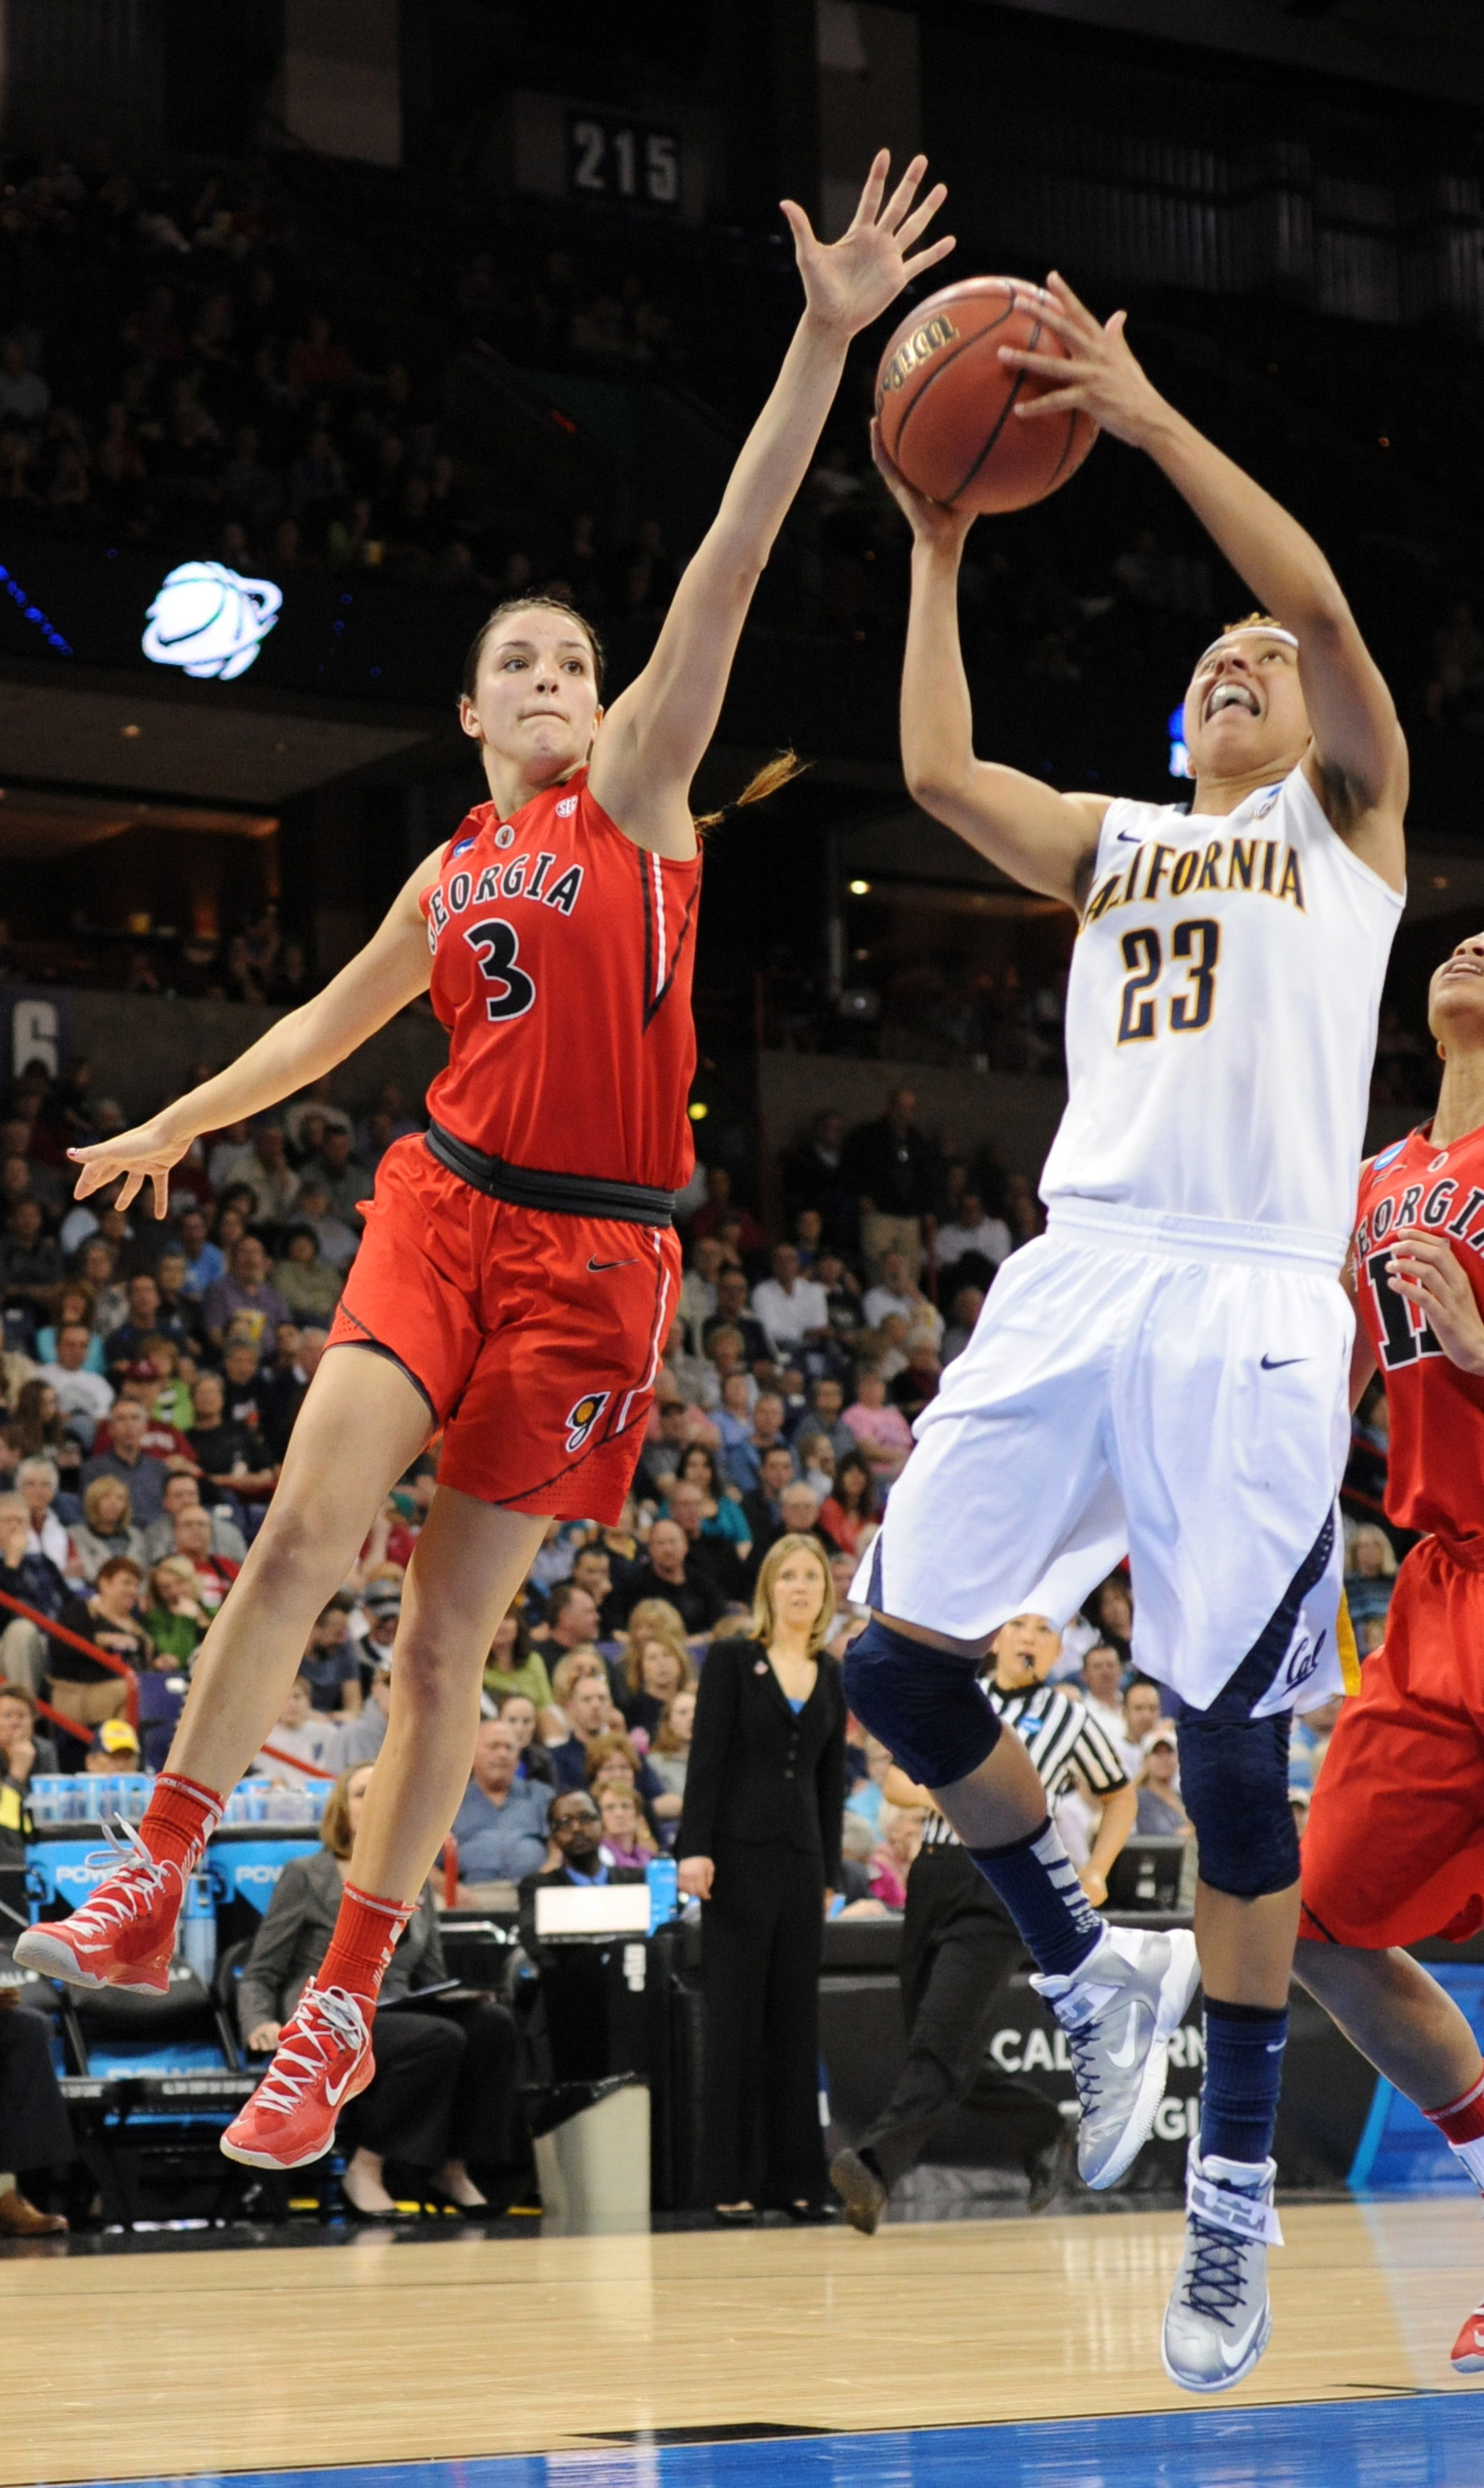 Georgia's Anne Marie Armstrong was one of three Bulldogs selected in the 2013 WNBA Draft while Cal's Layshia Clarendon was one of three Pac-12 players.